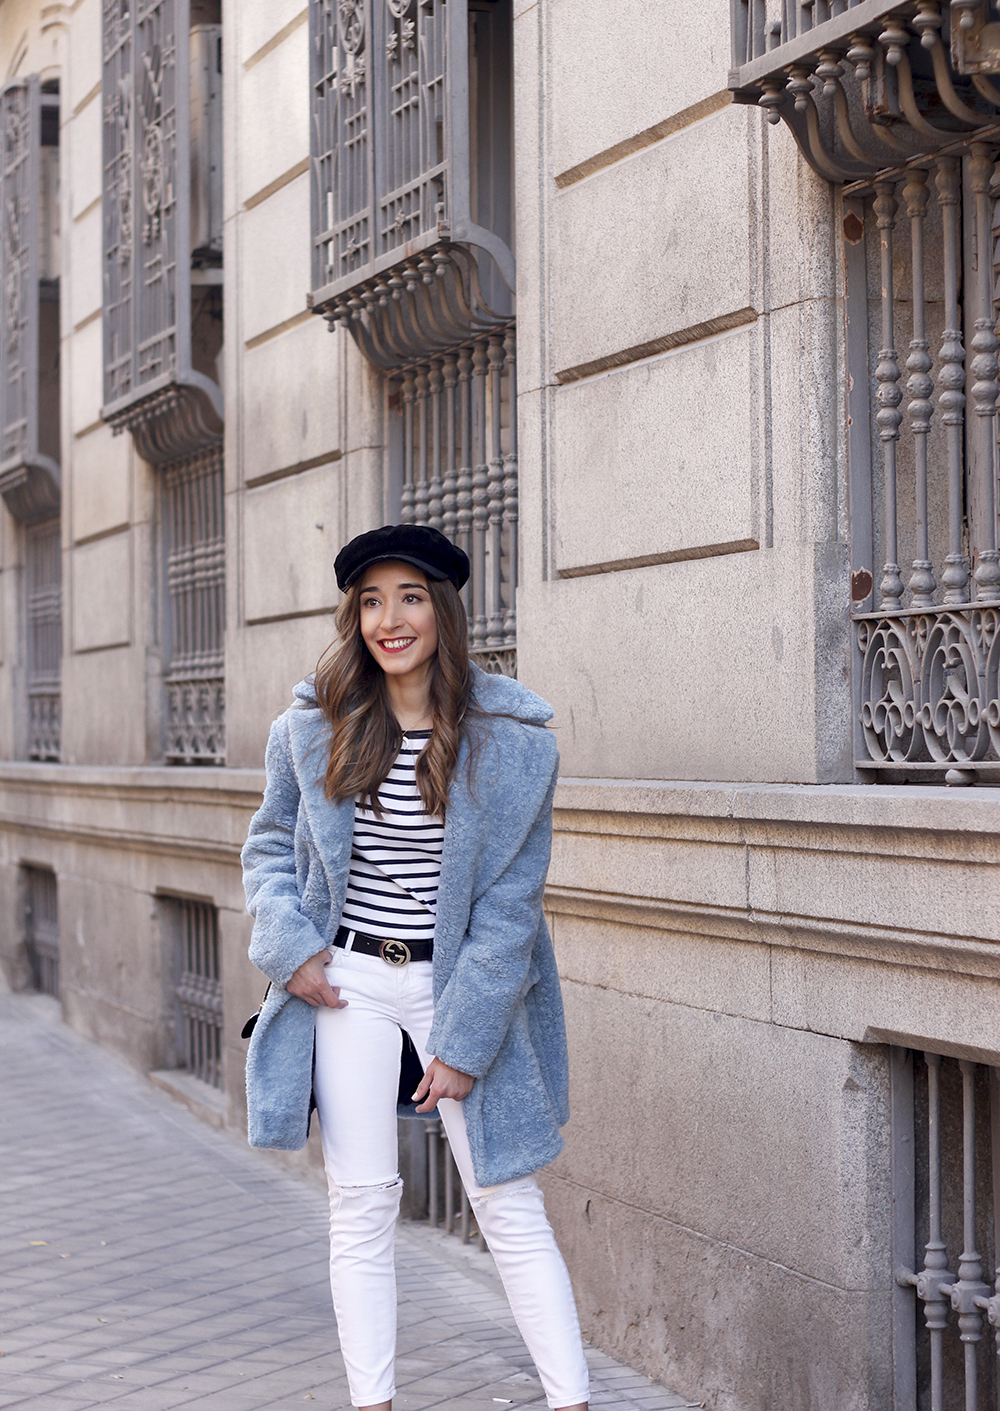 blue fur coat stripes white ripped jeans givenchy bag navy cap fall outfit street style10